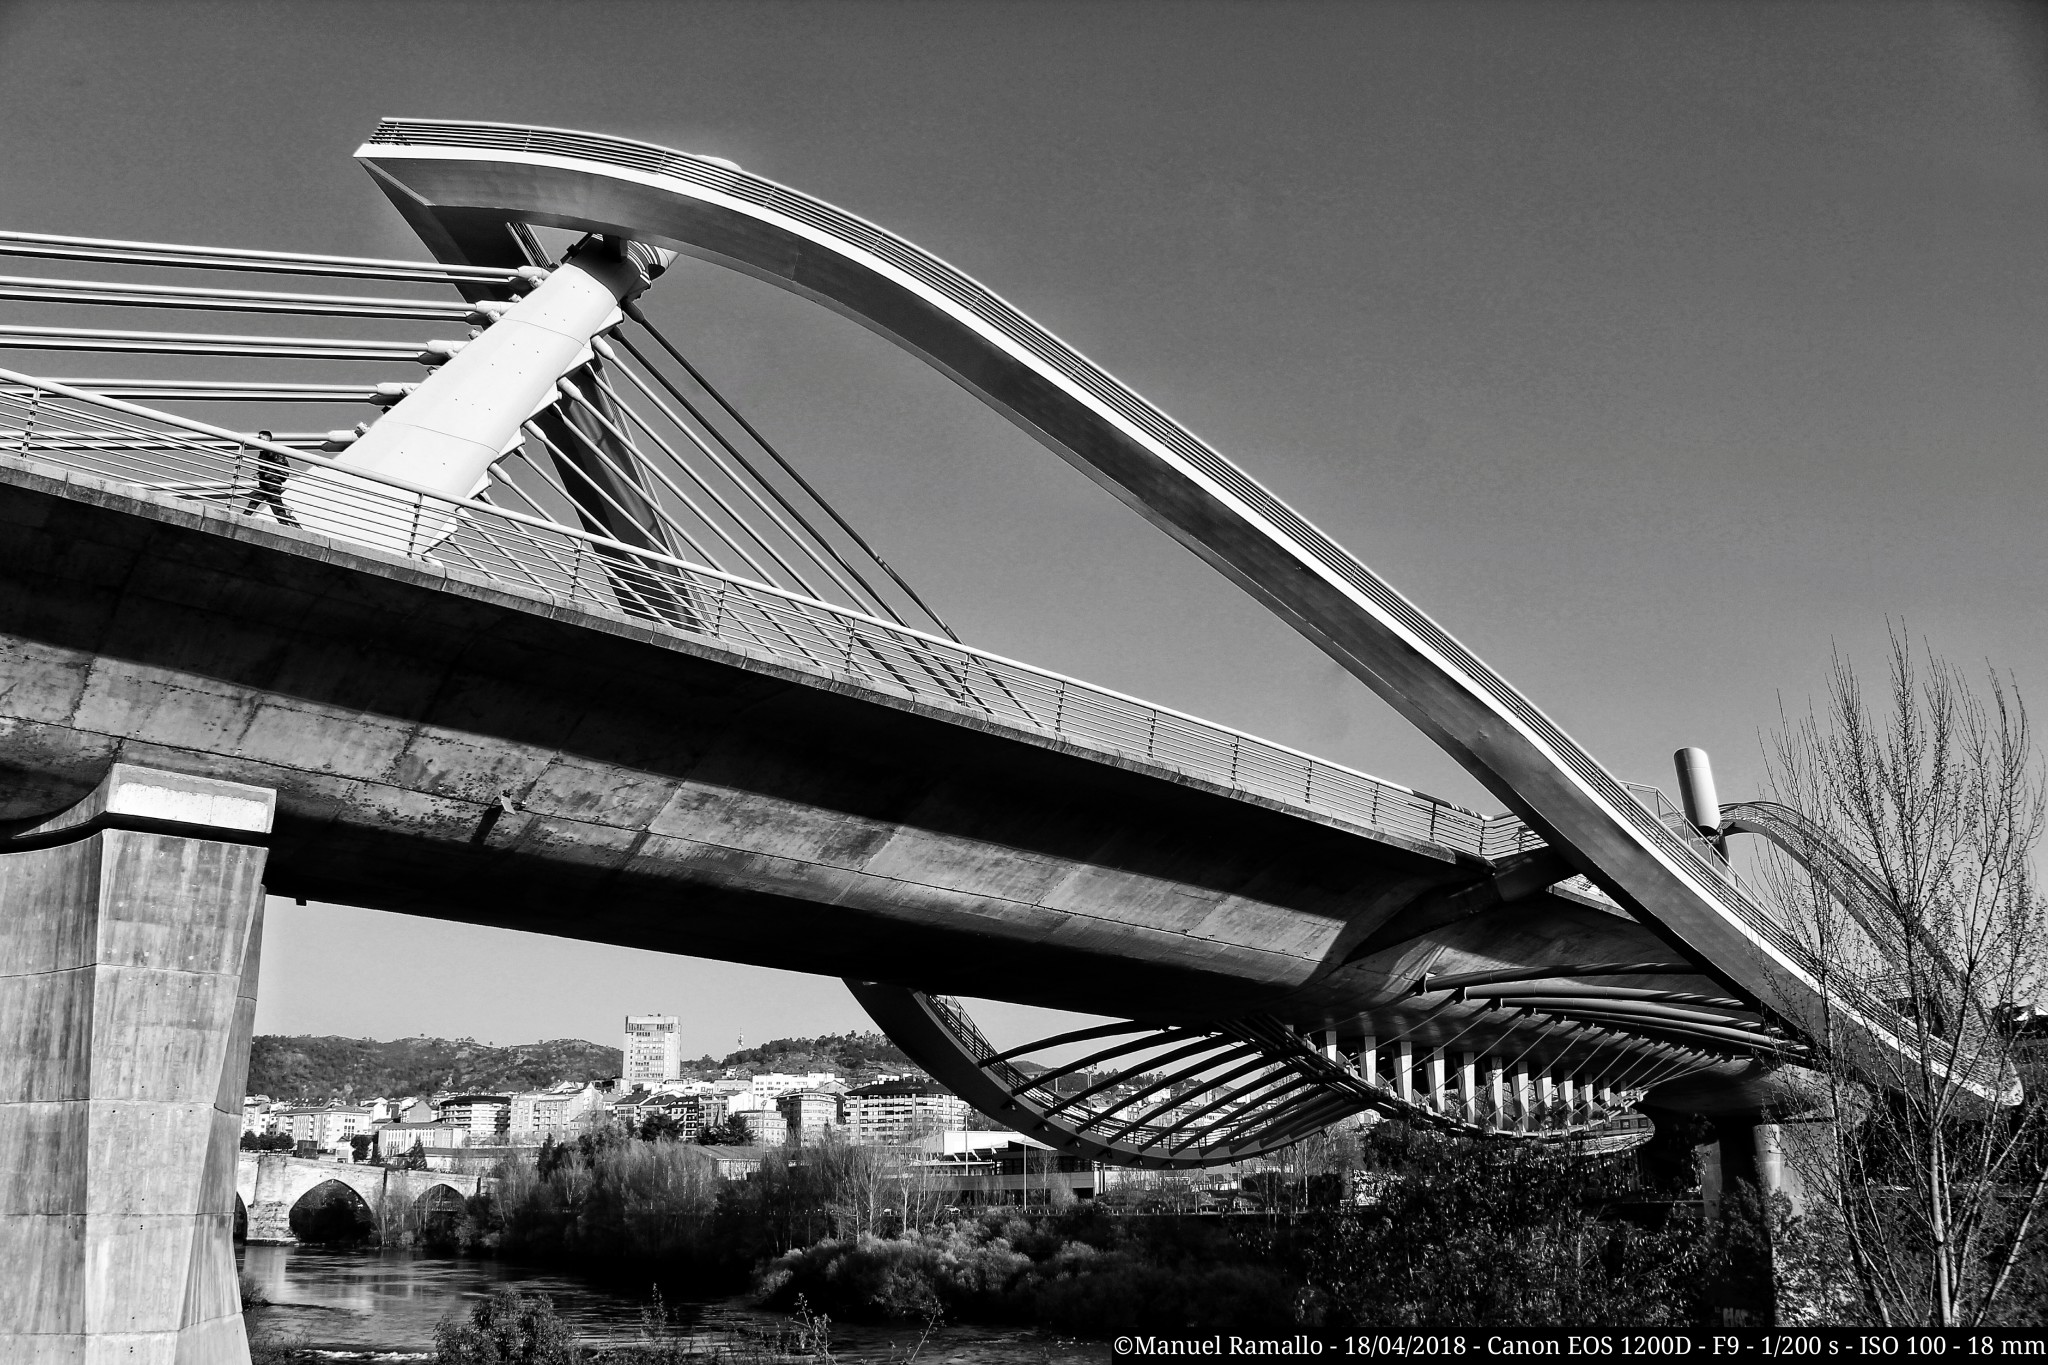 solo-en-el-puente-del-milenio-blanco-y-negro-ourense-orense-alone-in-the-bridge